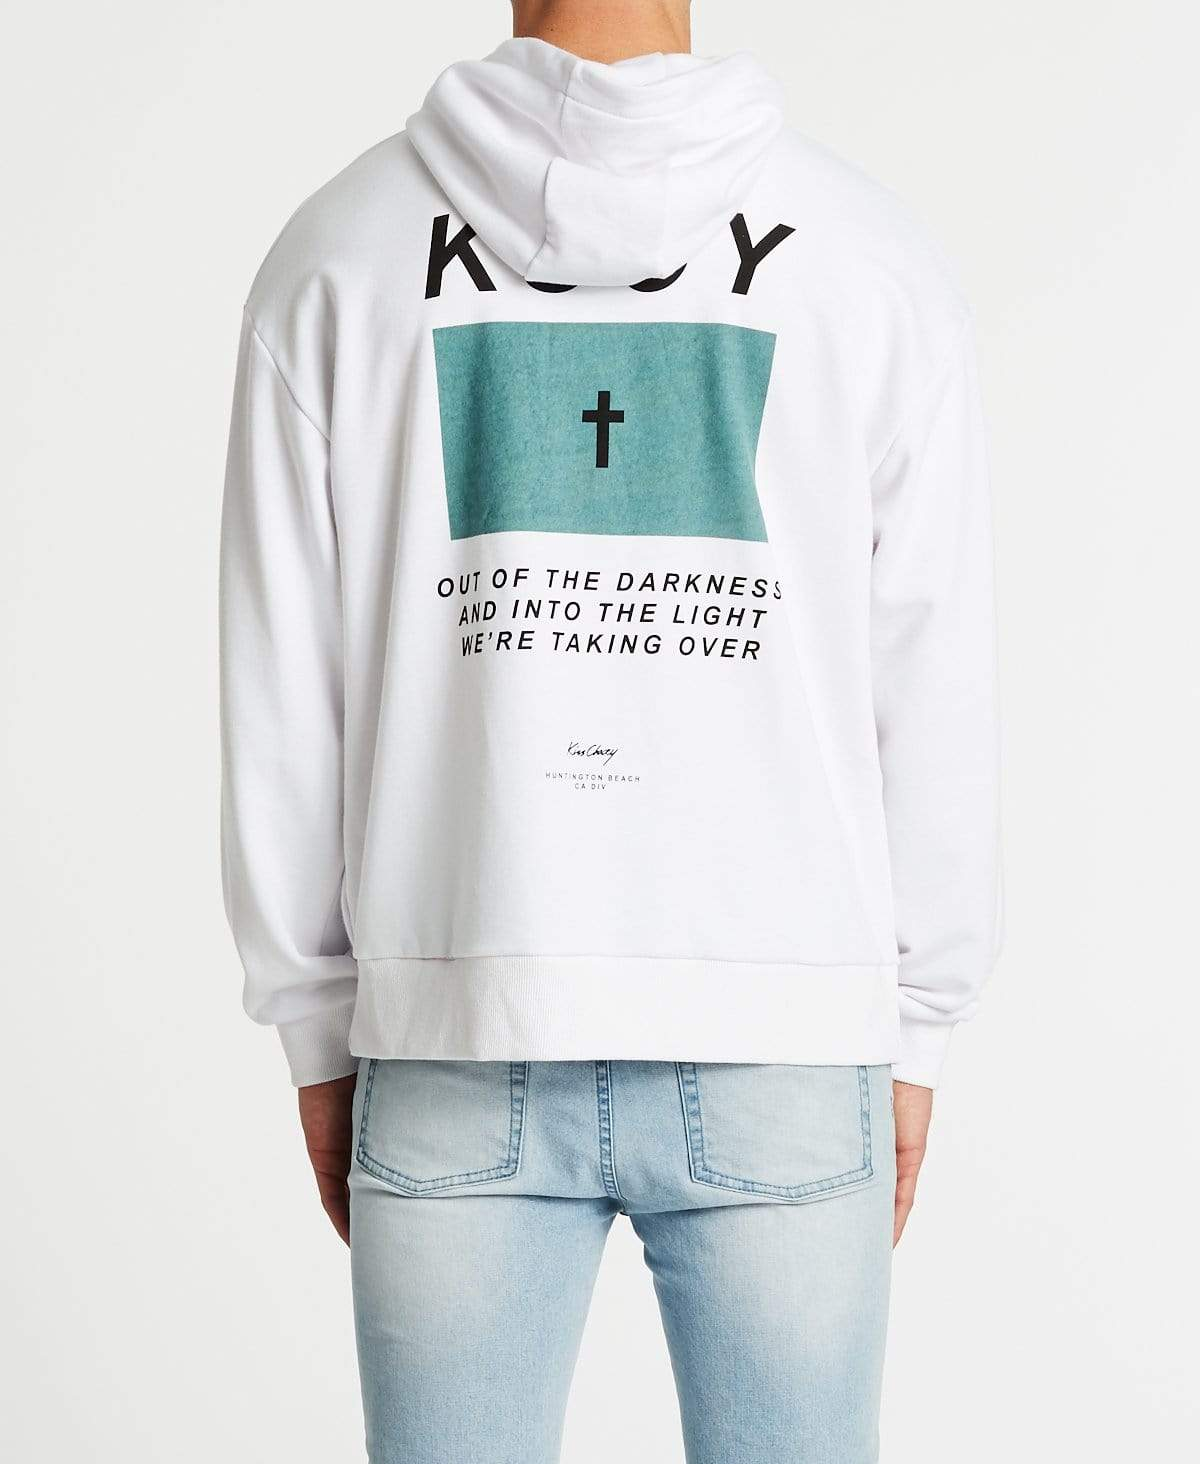 Kiss Chacey Sighted Relaxed Fit Hoodie White